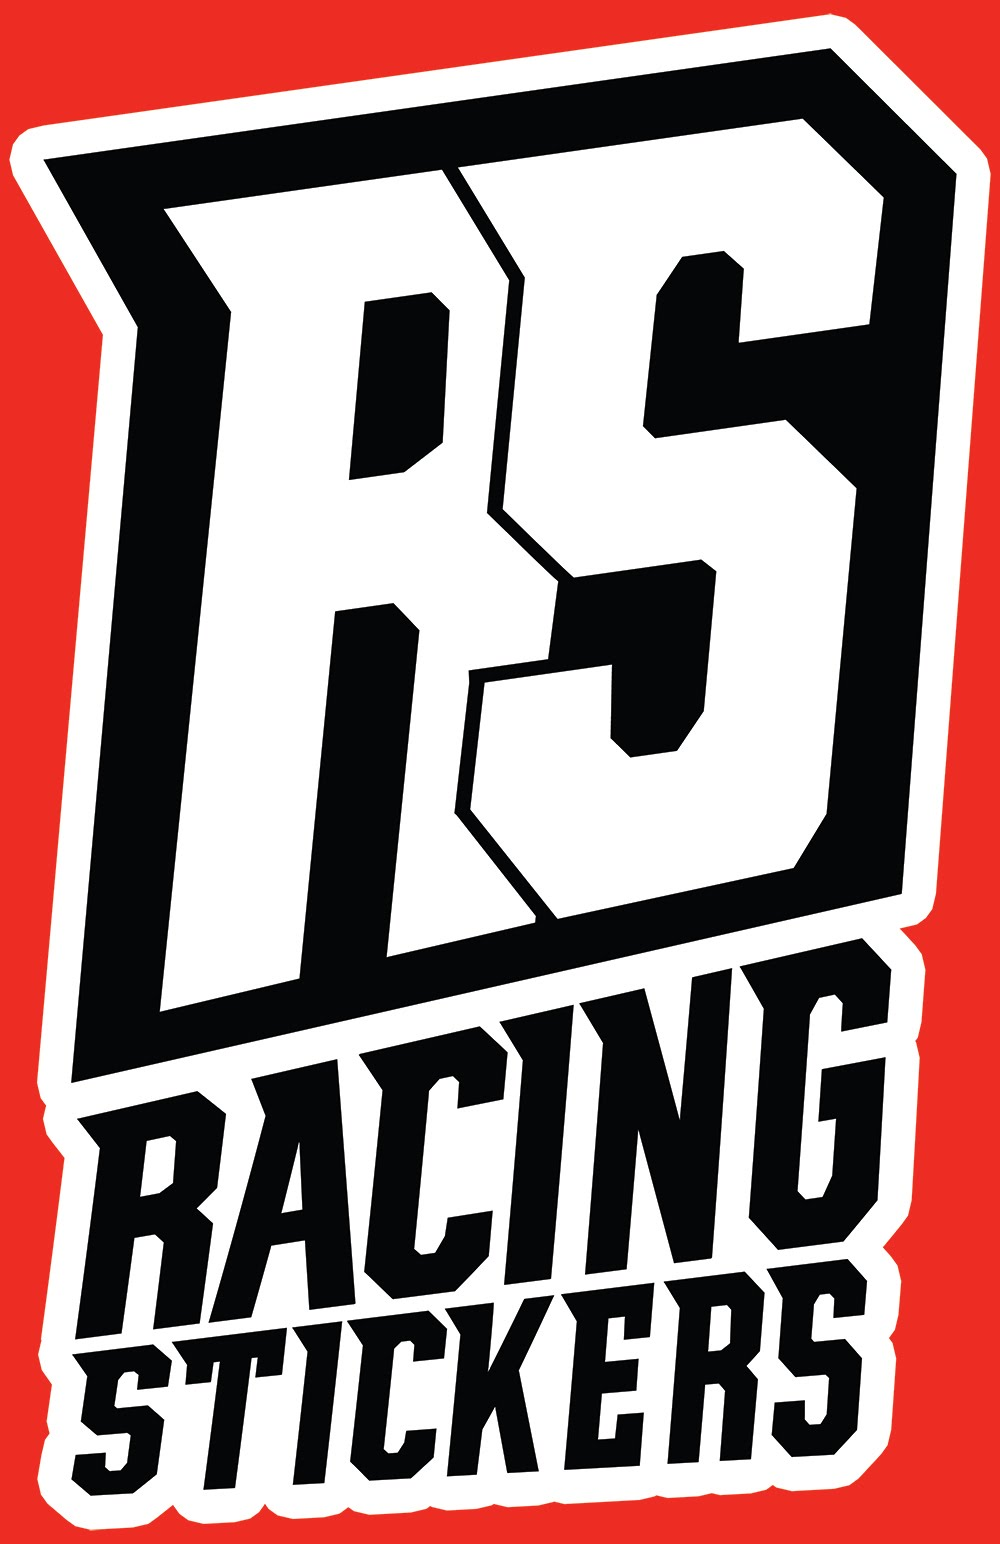 Racing Stickers Store